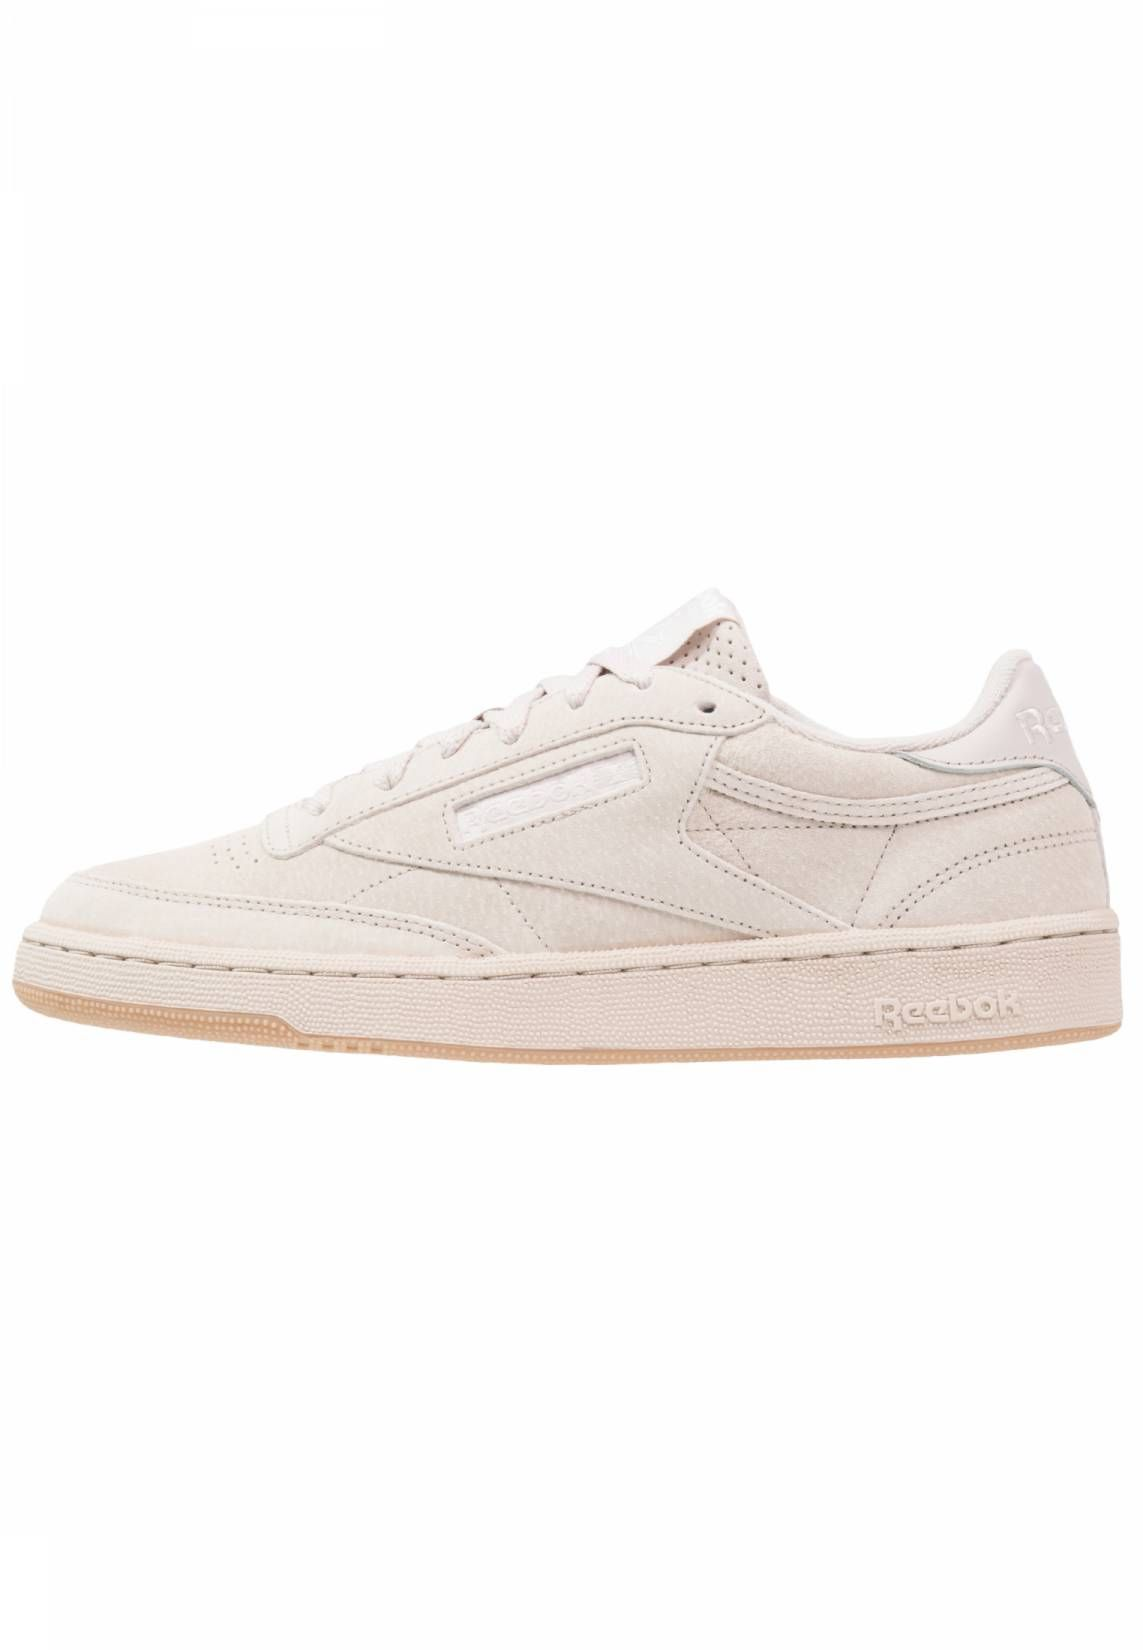 Reebok Club C 85 SG shoes beige